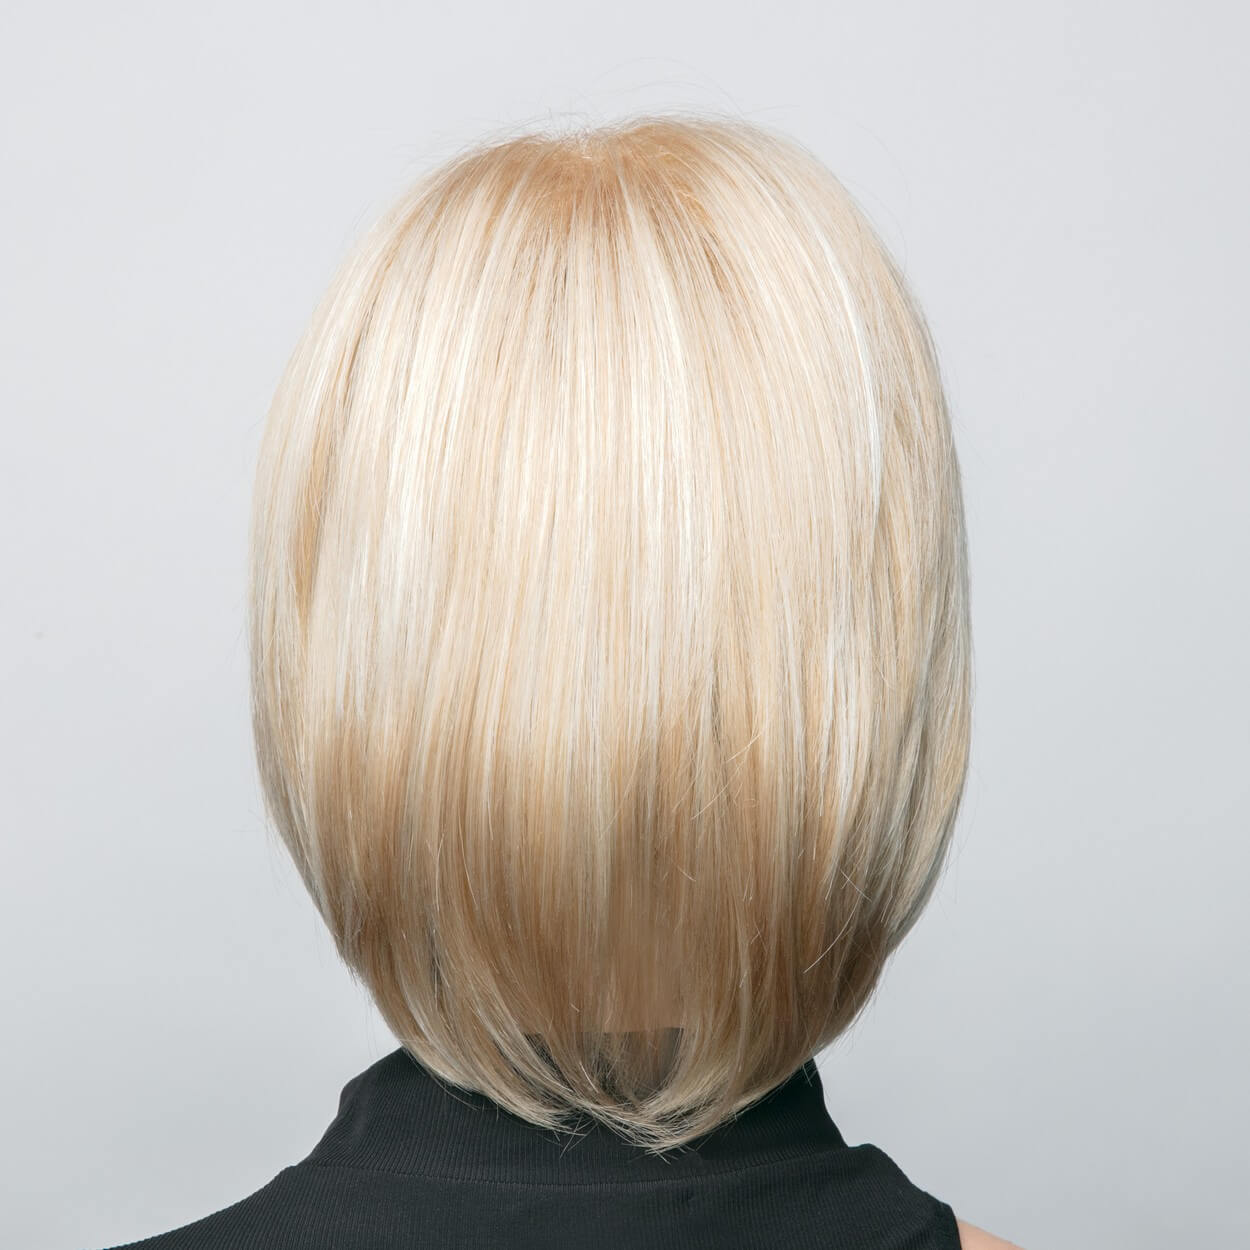 Shannon by Rene of Paris in Creamy Blonde Image 3